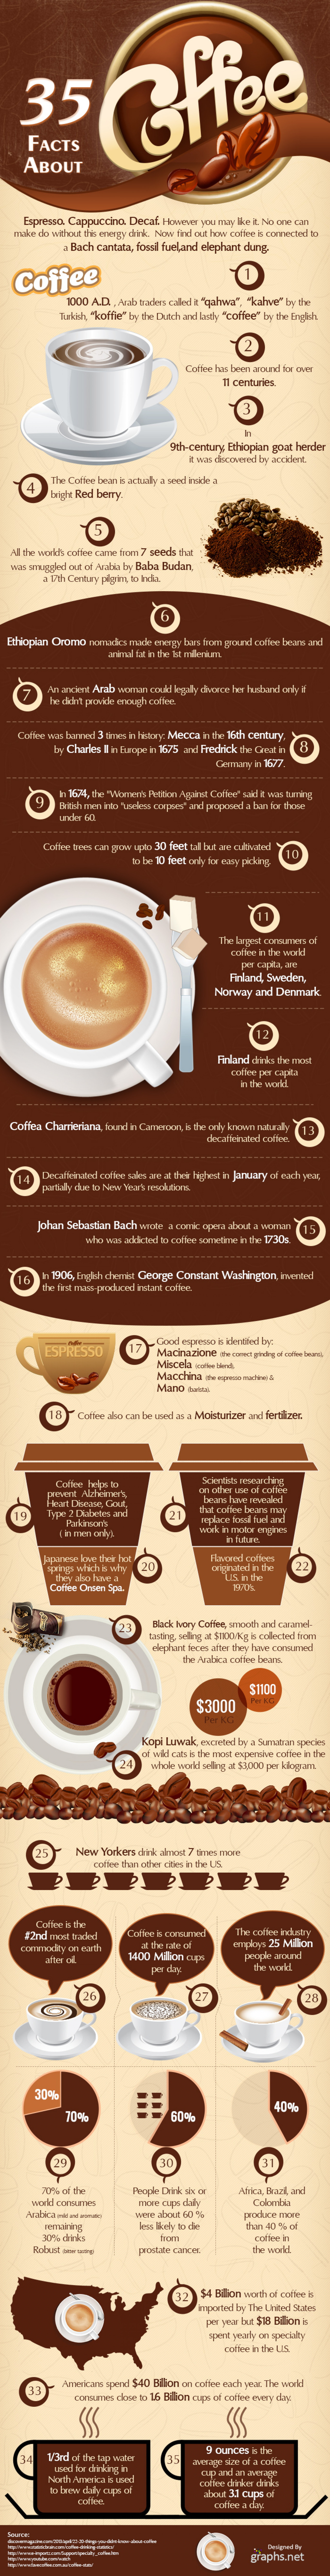 Interesting facts about coffee Infographic